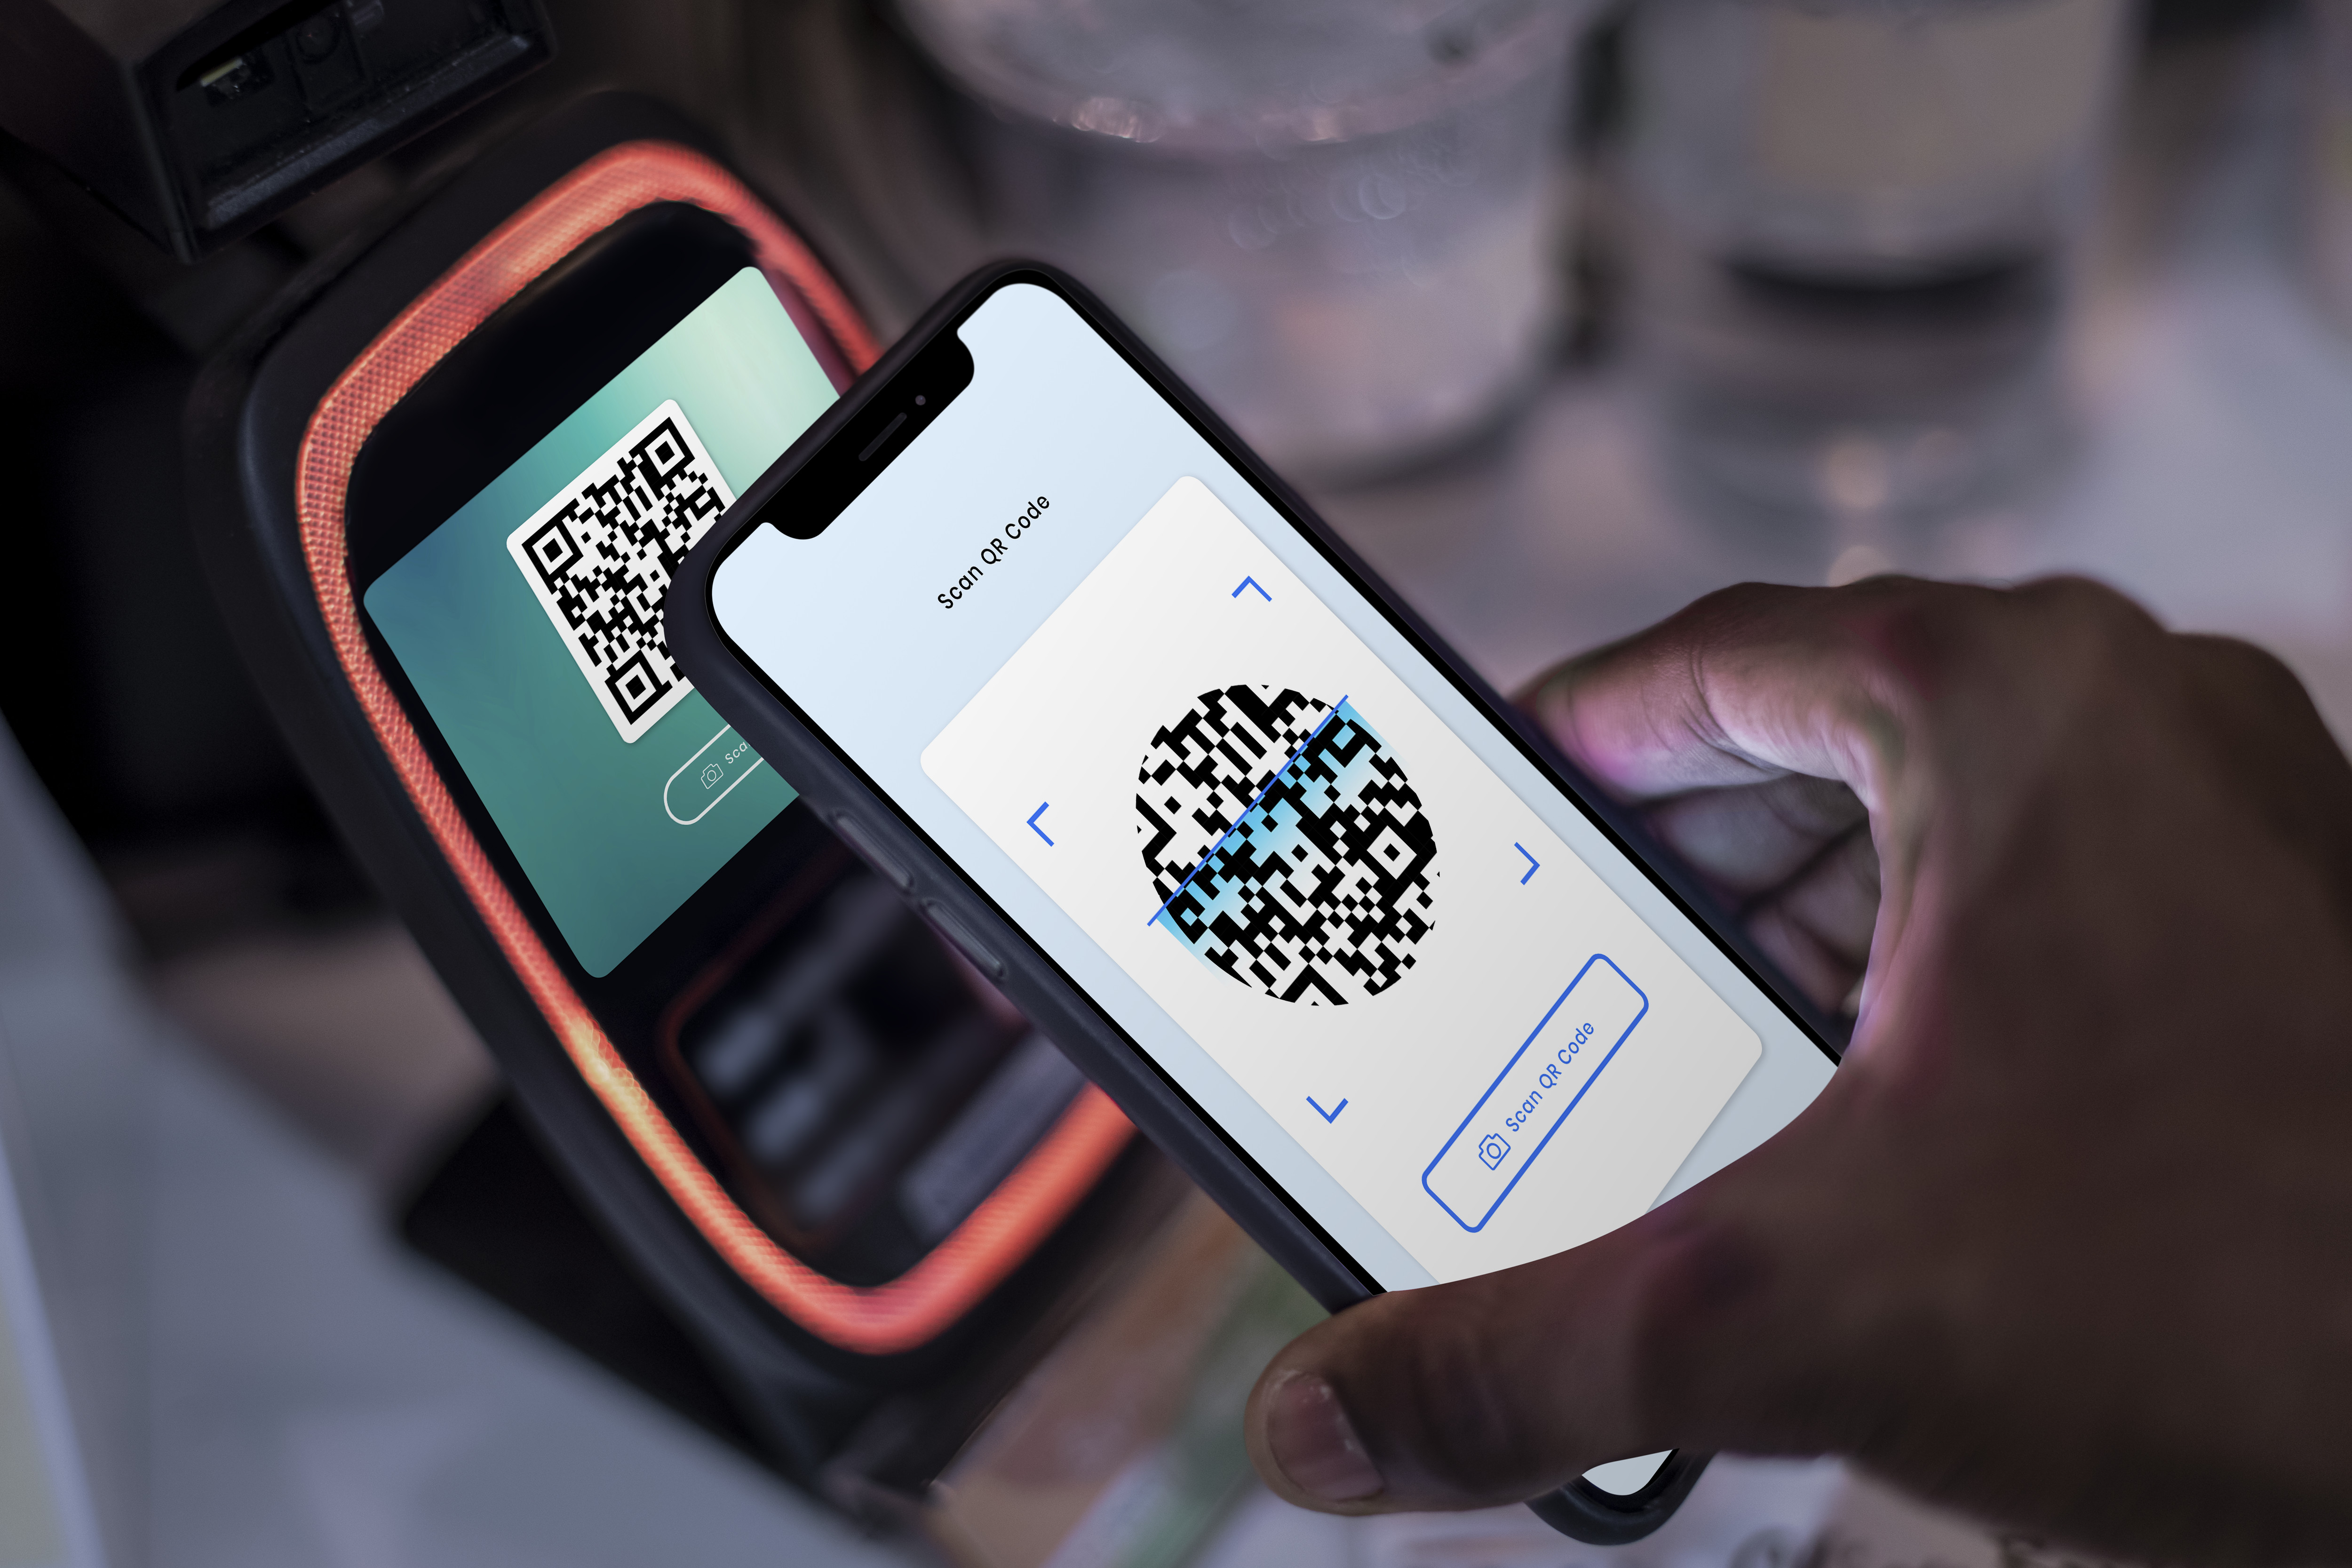 Contactless and cashless payment through qr code and mobile banking